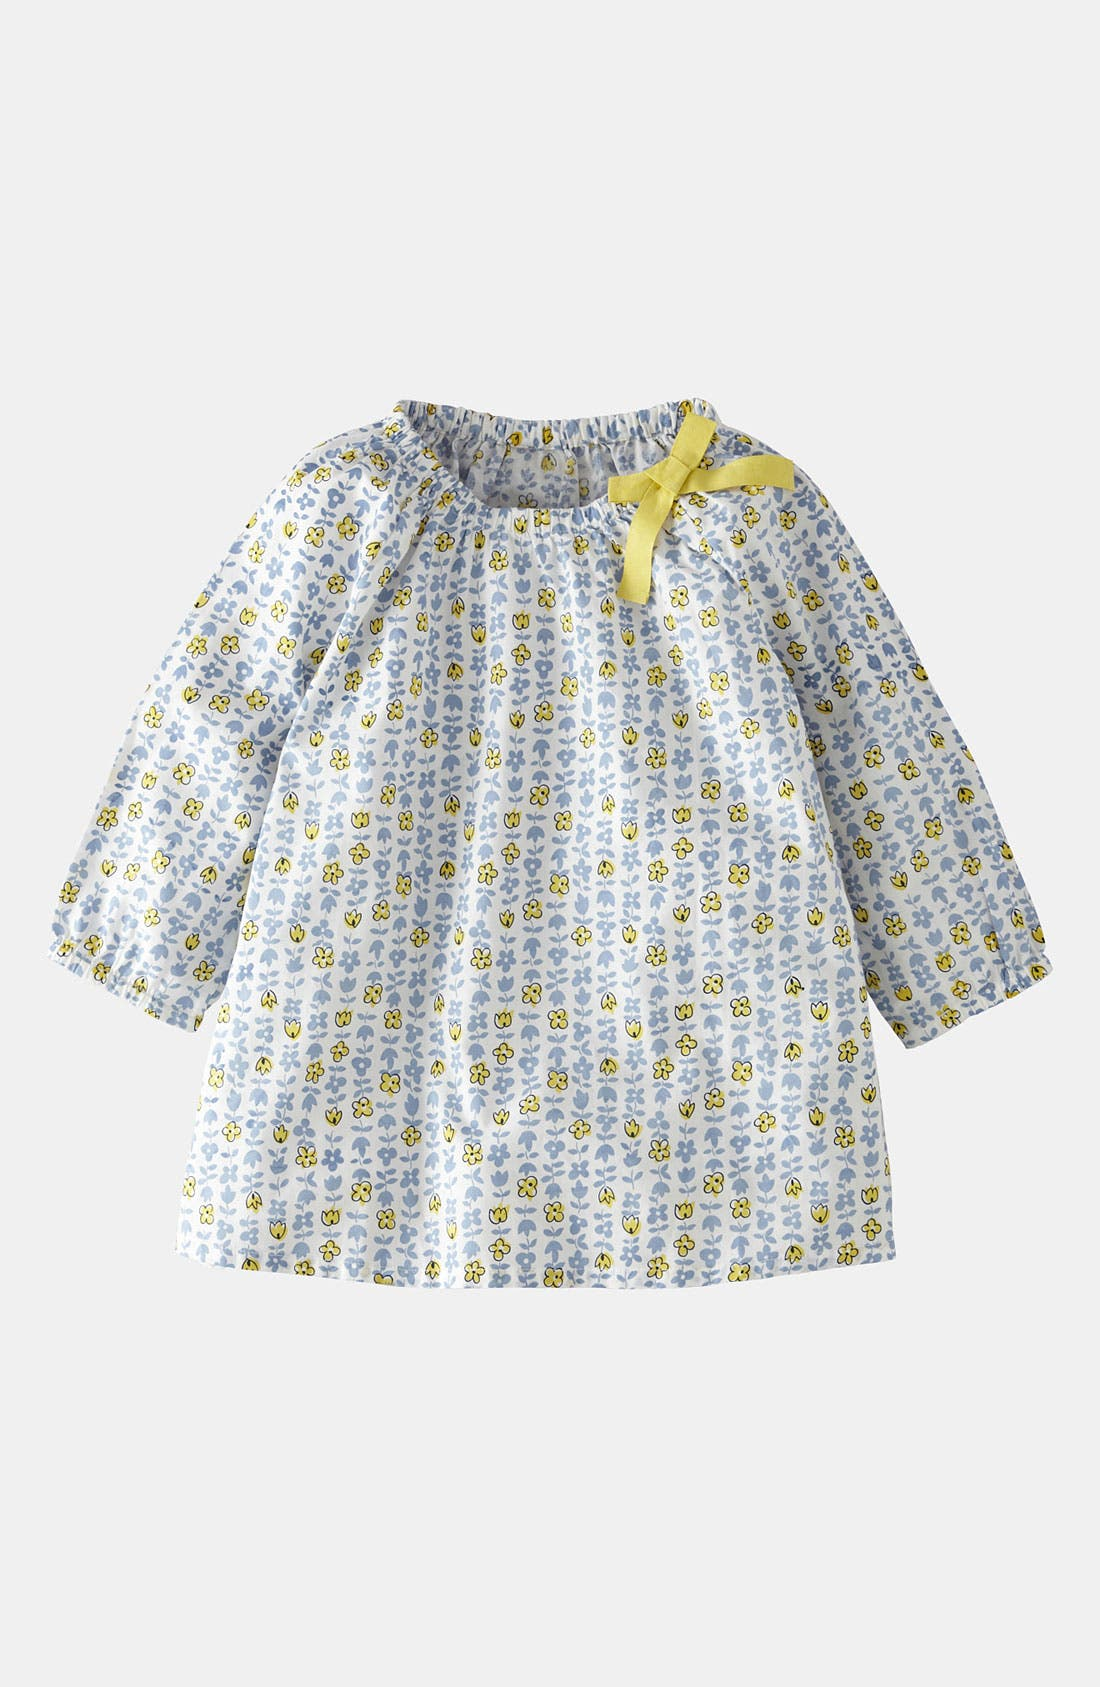 Main Image - Mini Boden 'Pretty' Woven Top (Little Girls & Big Girls)